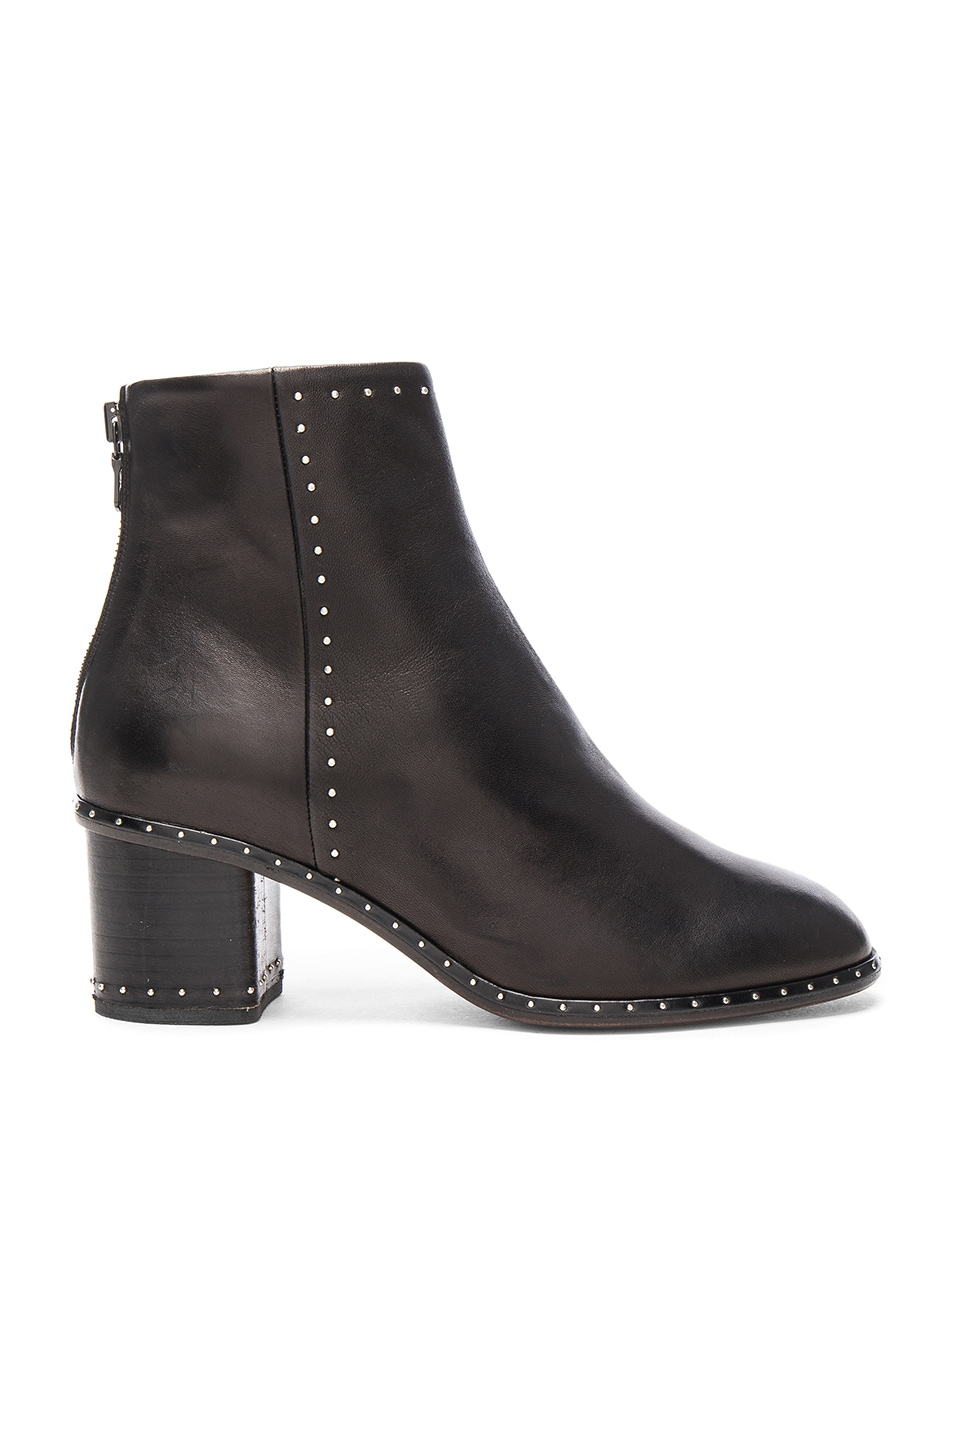 Image 1 of Rag & Bone Leather Willow Stud Boots in Black